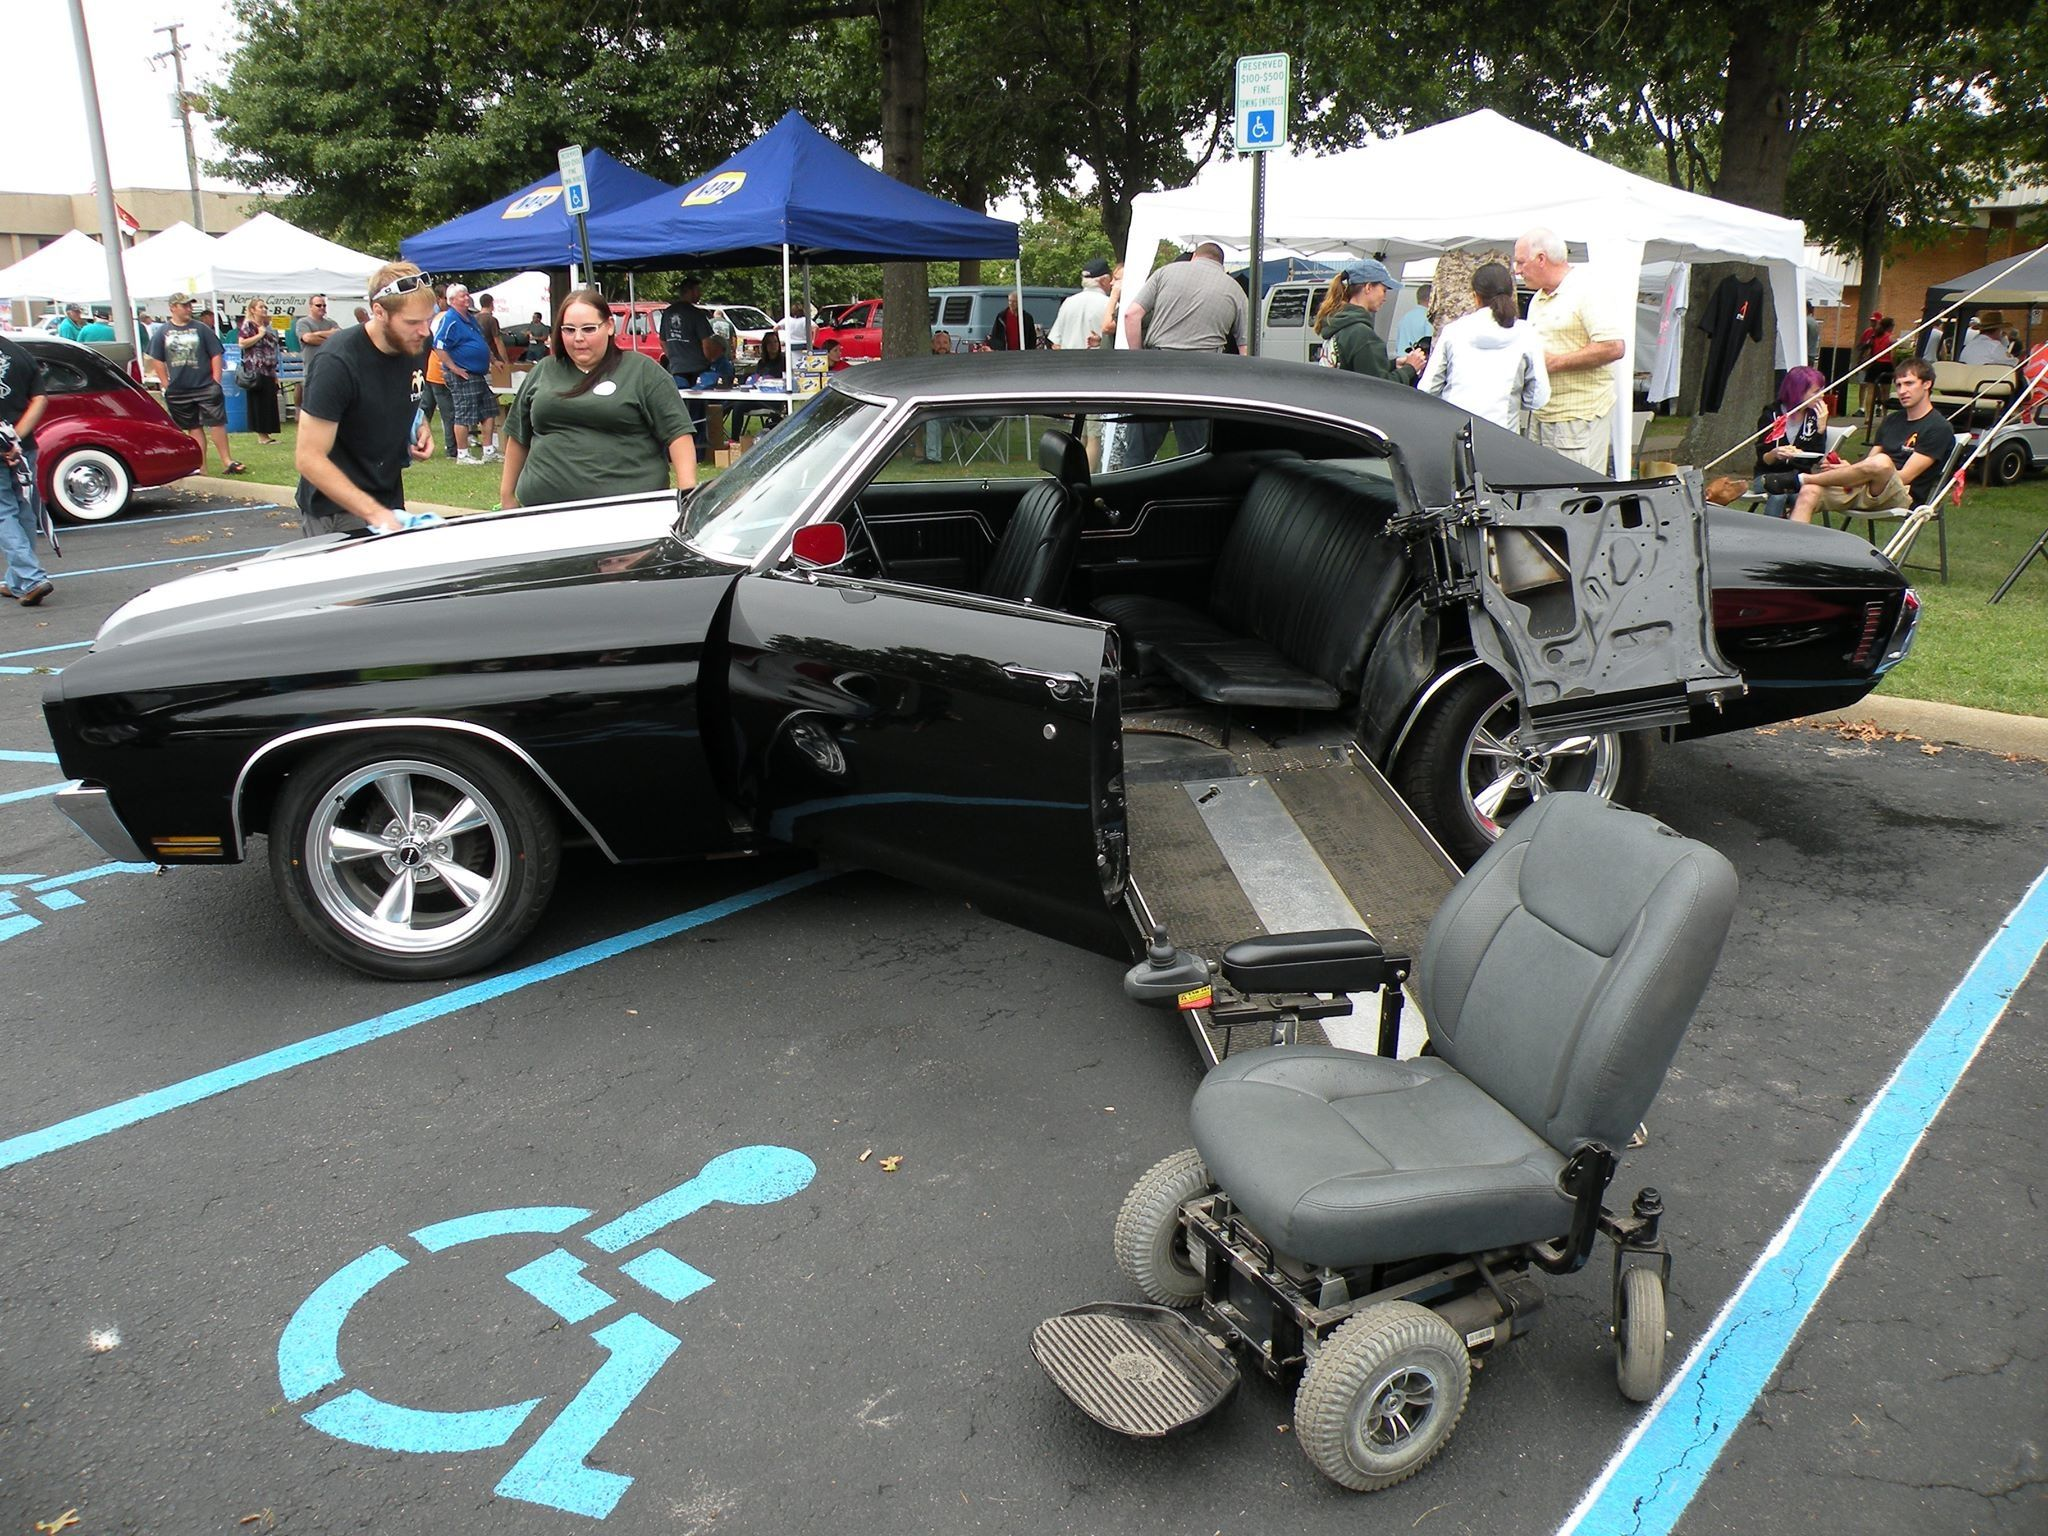 Handicap Bathroom Video On Facebook 70 chevelle wheelchair accessible. solid. (via usa-1, facebook